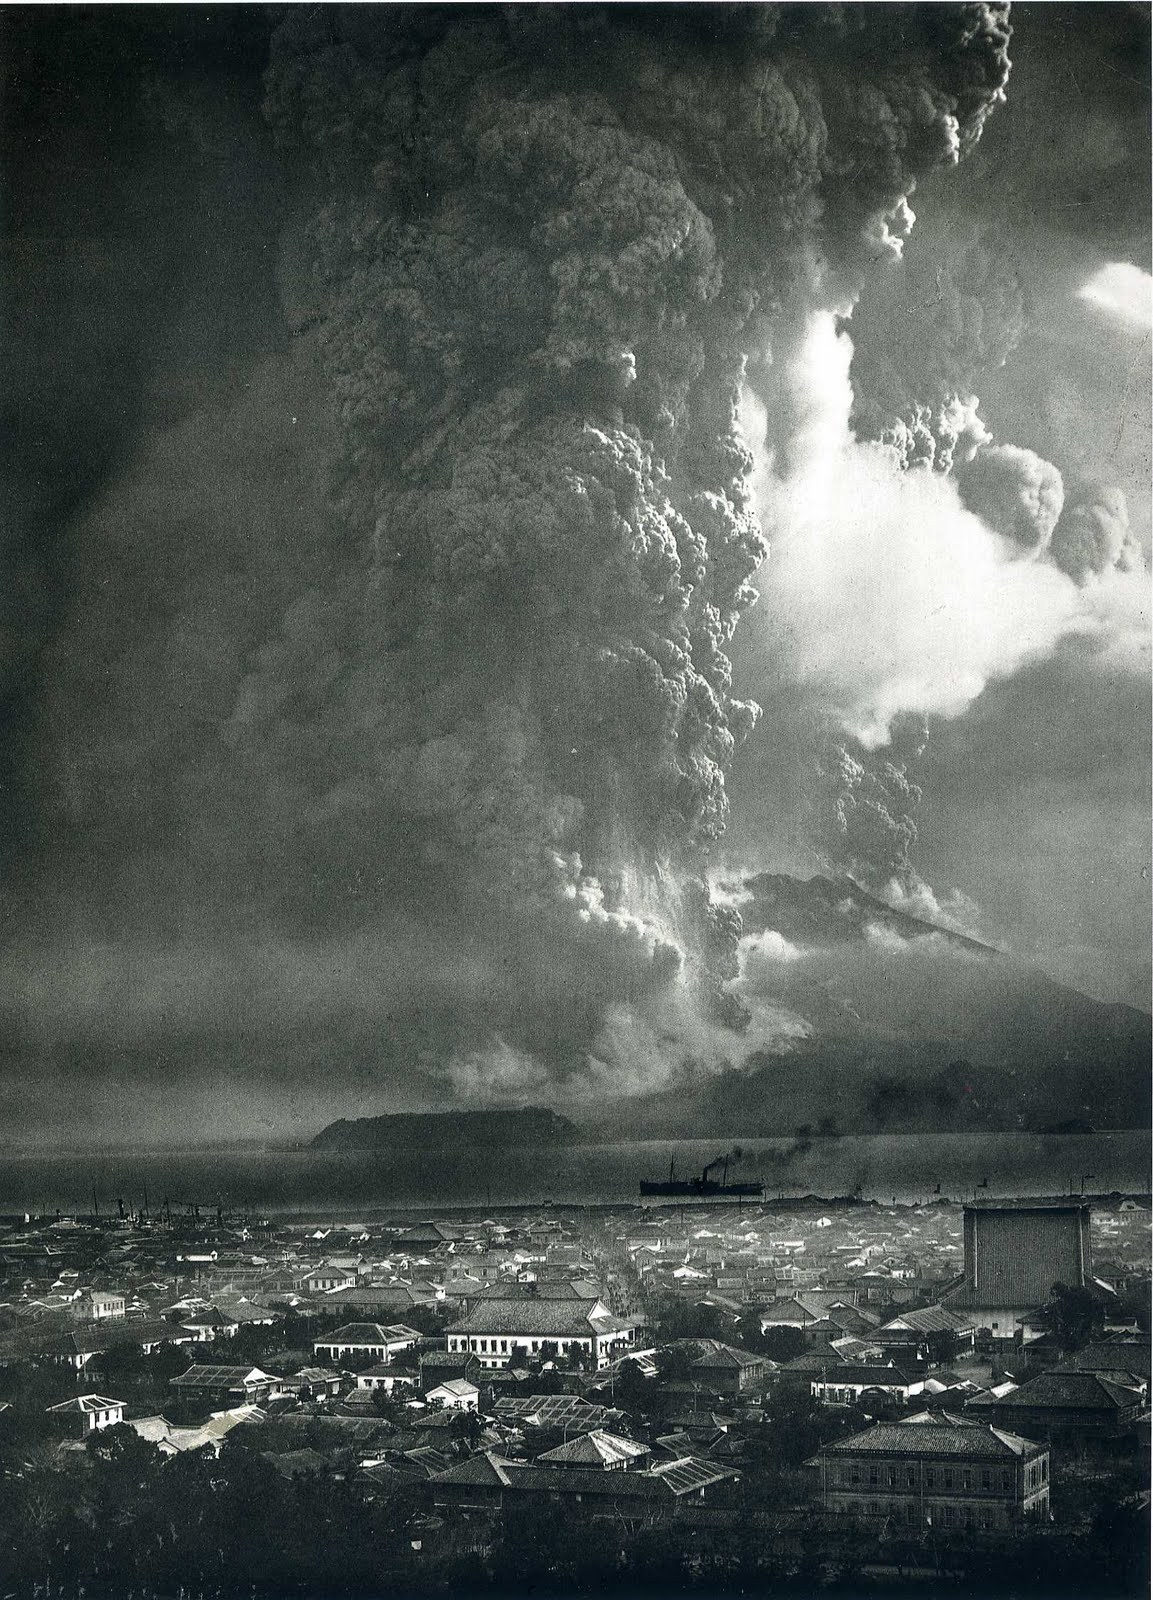 The eruption of Mt. Sakurajima, 1914